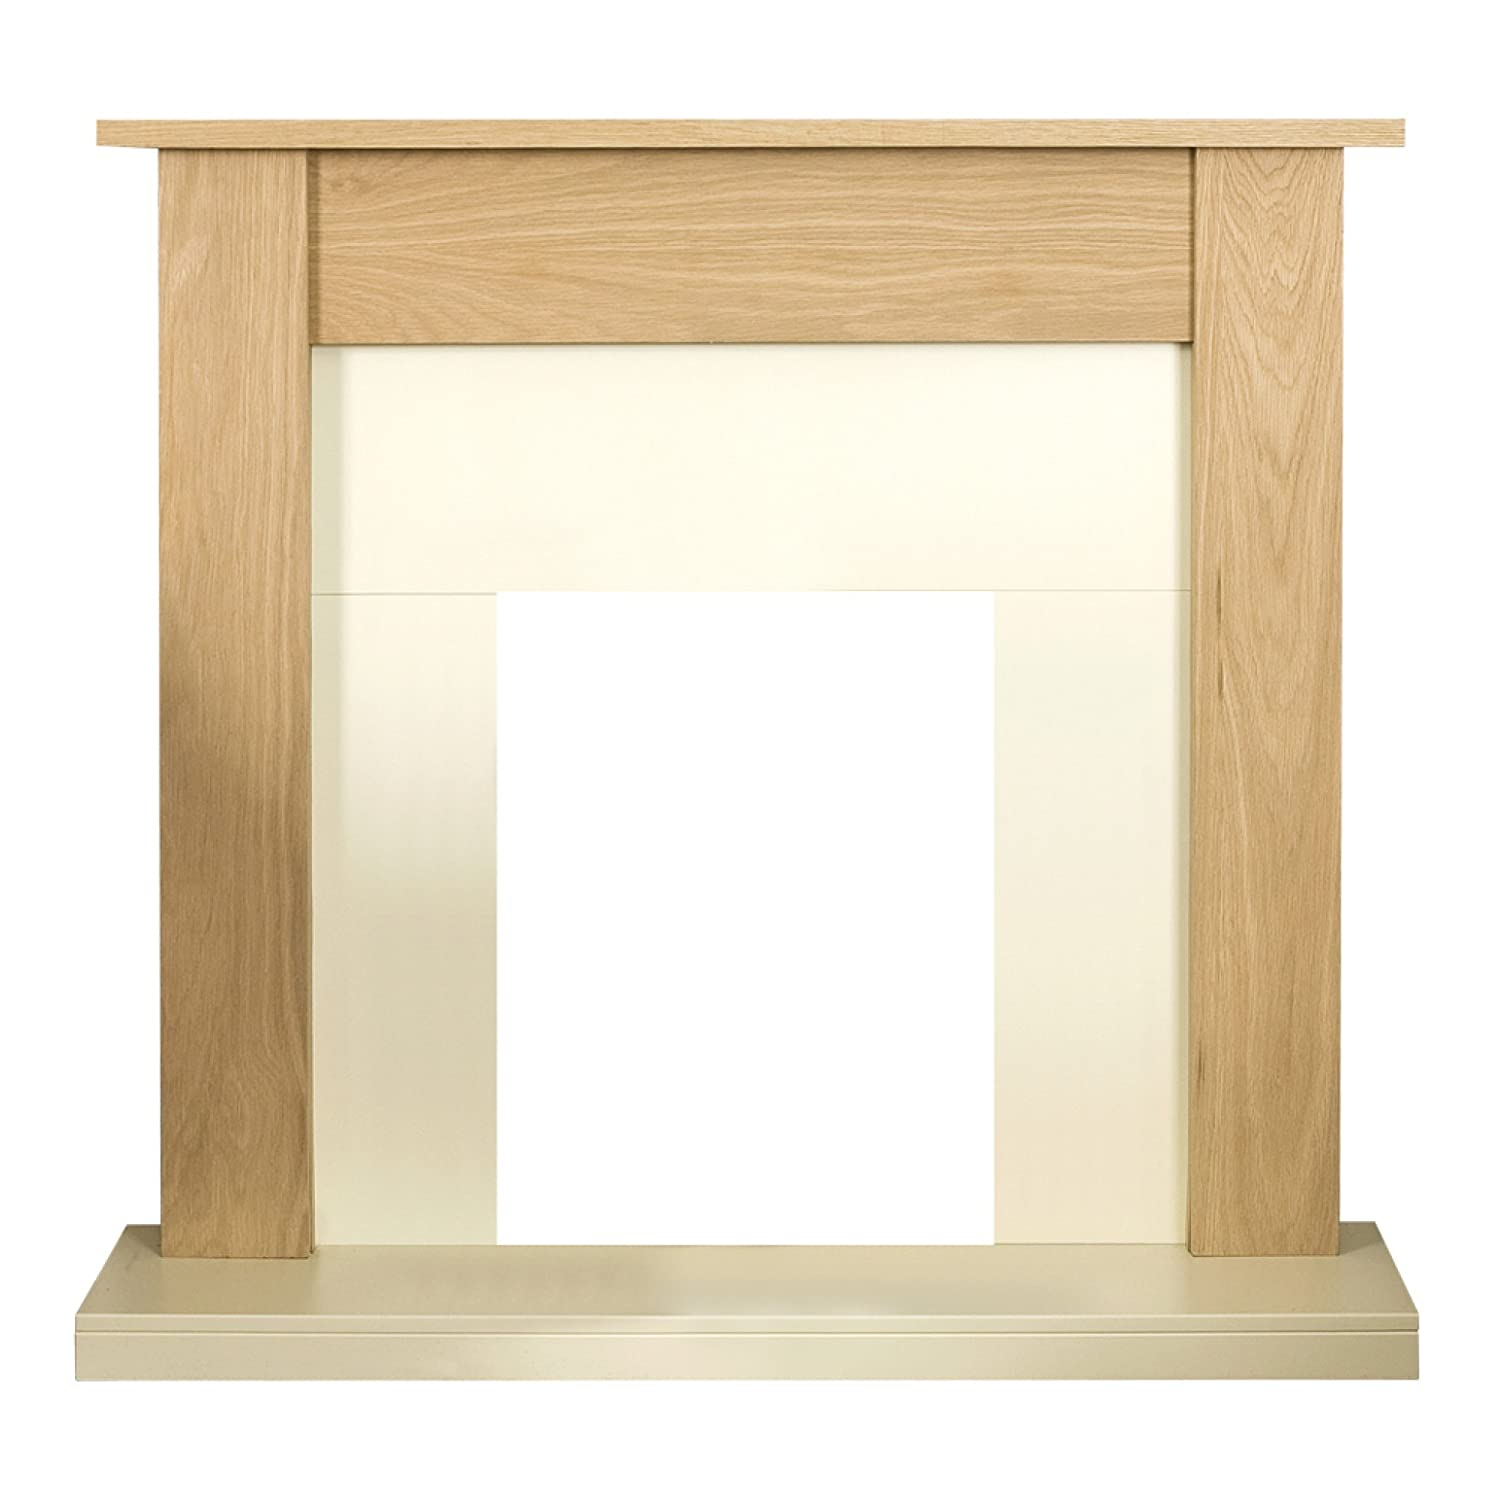 Adam Southwold Fireplace in Oak and Cream, 43 inch